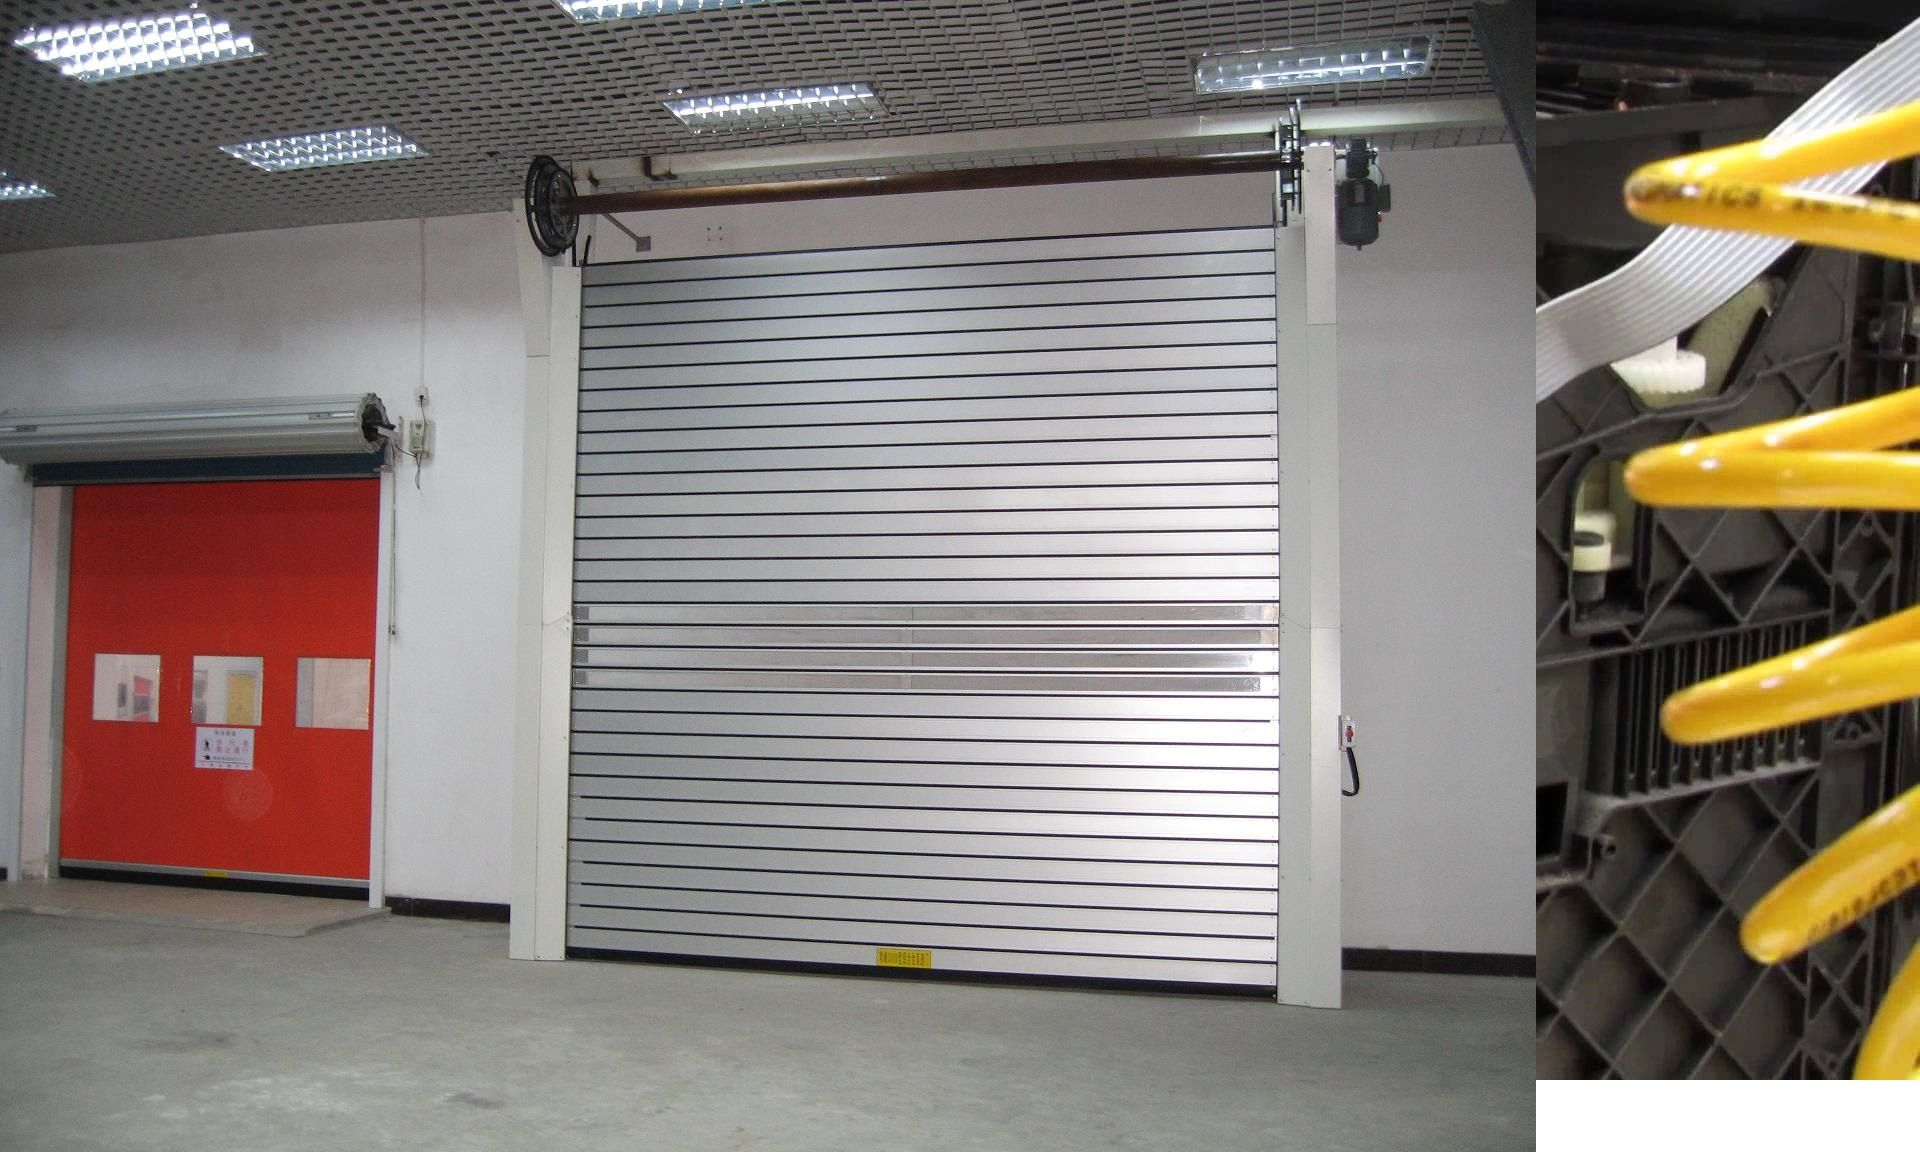 Steel Doors Repair Steel Doors Garage Door Repair Service